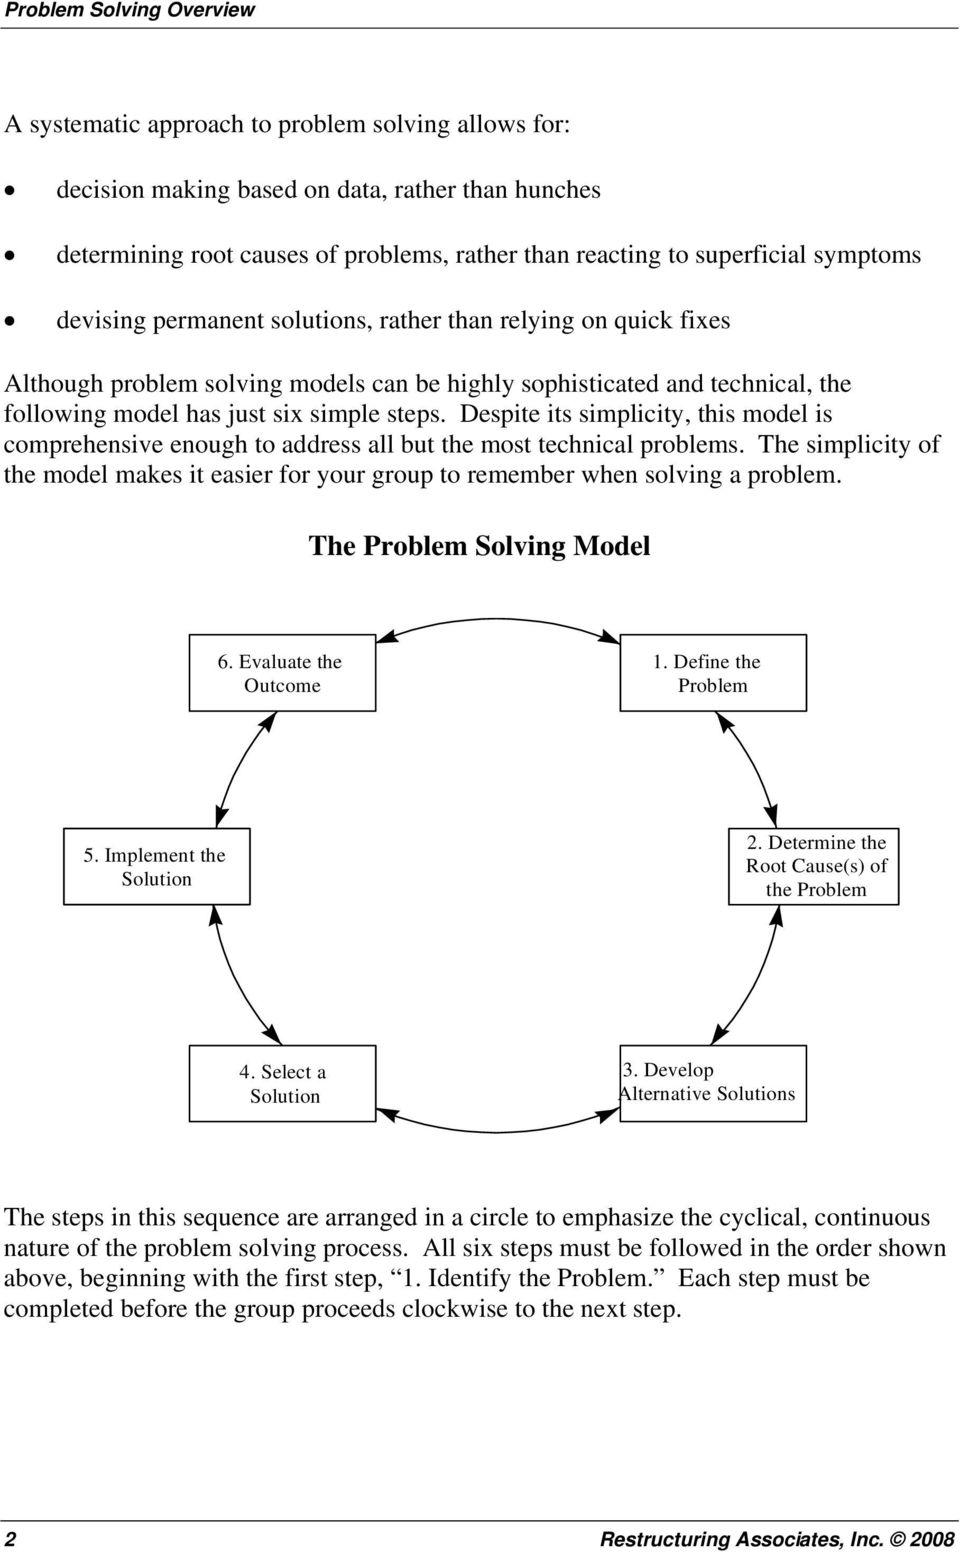 Despite its simplicity, this model is comprehensive enough to address all but the most technical problems.